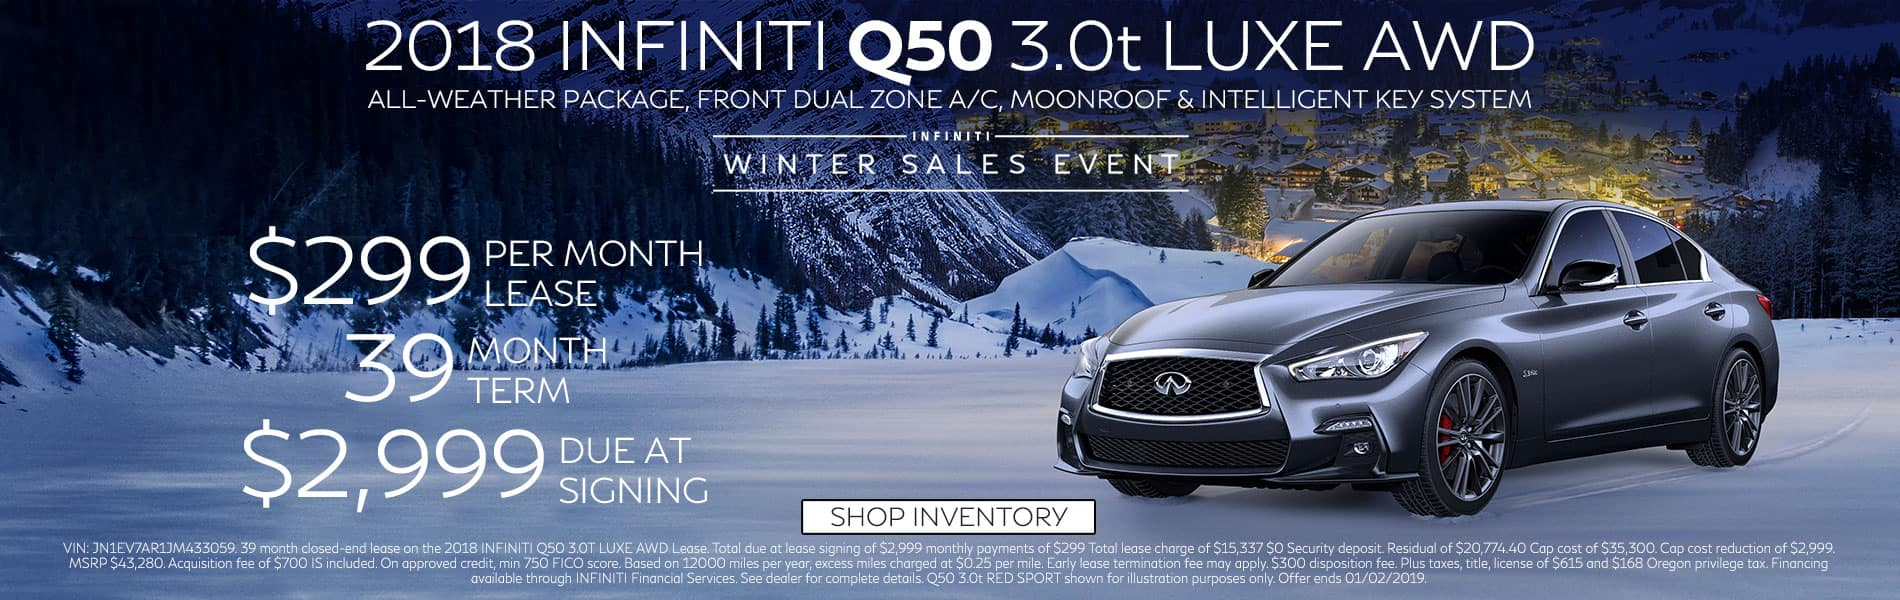 Lease a 2018 Q50 3.0t LUXE AWD for $299 per month with $2,999 due at signing